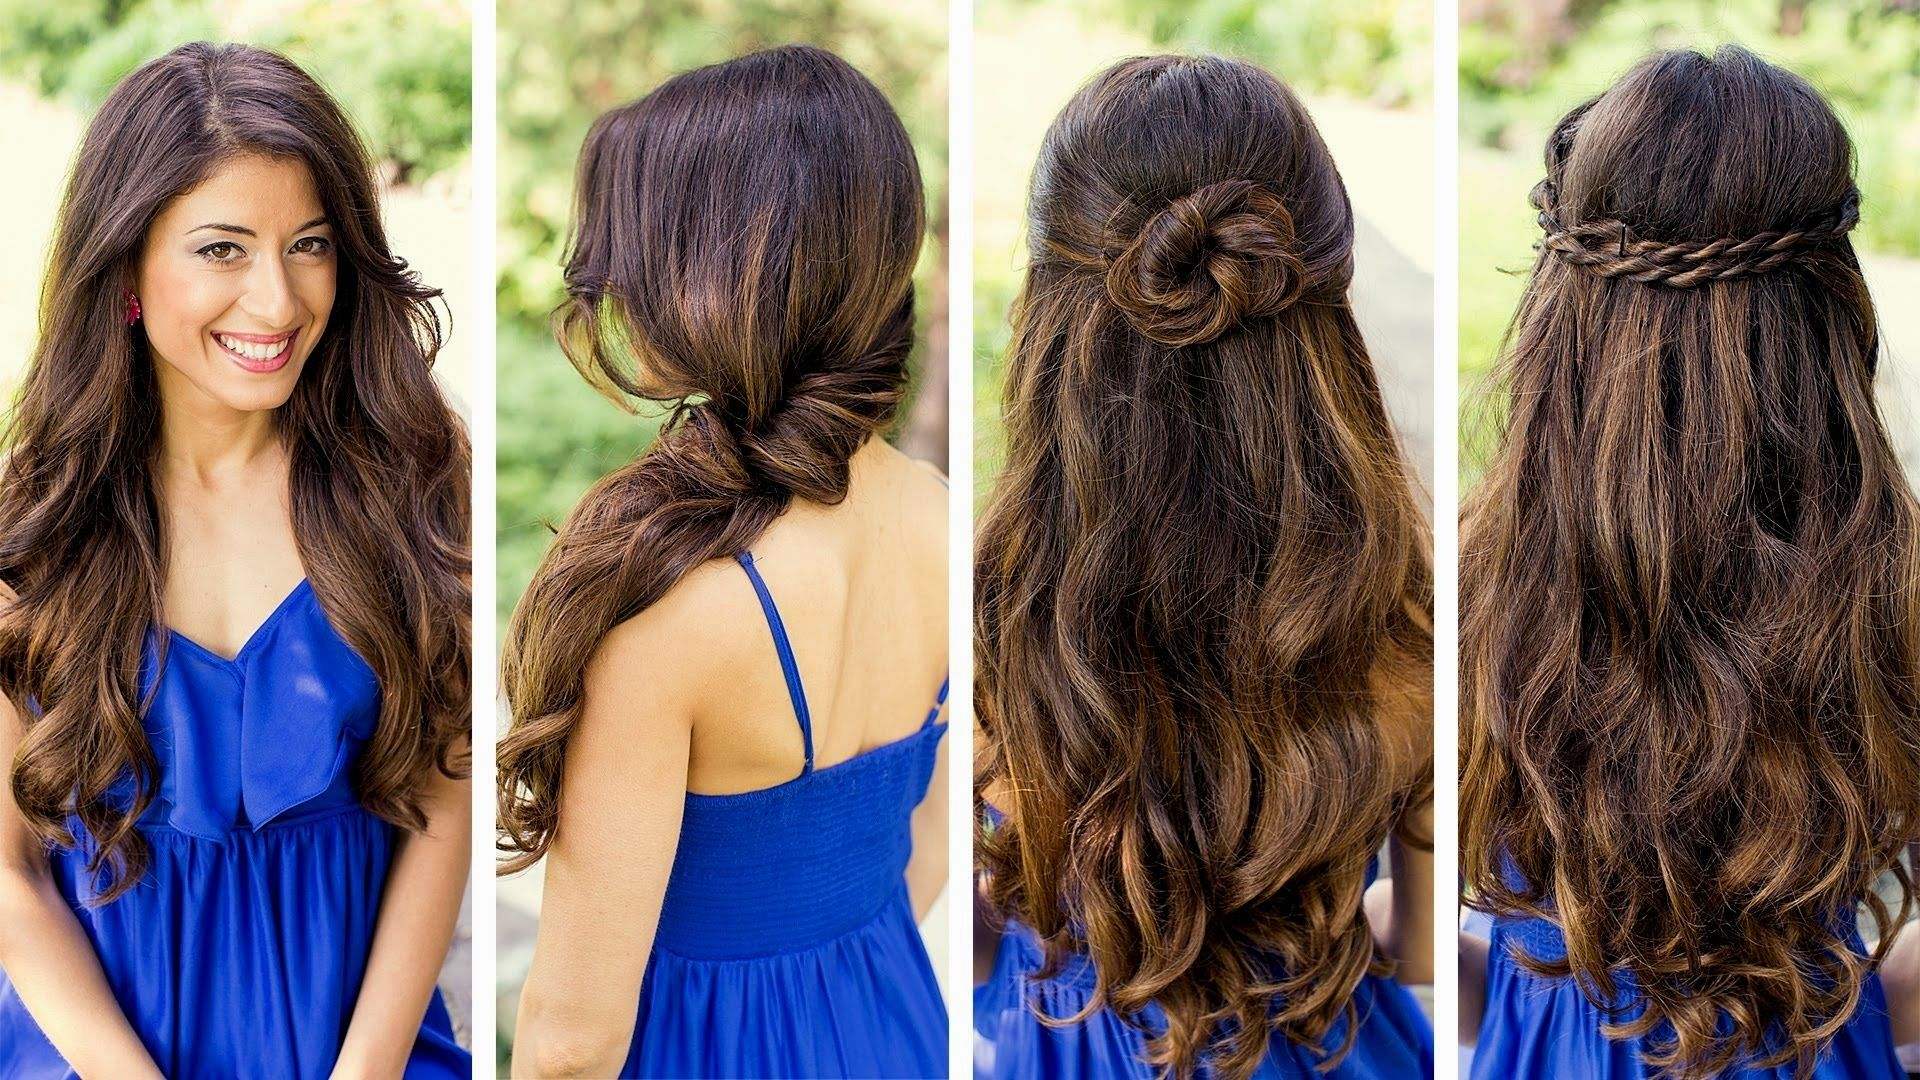 hairstyles for curly rough hair | hairstyles for curly hair